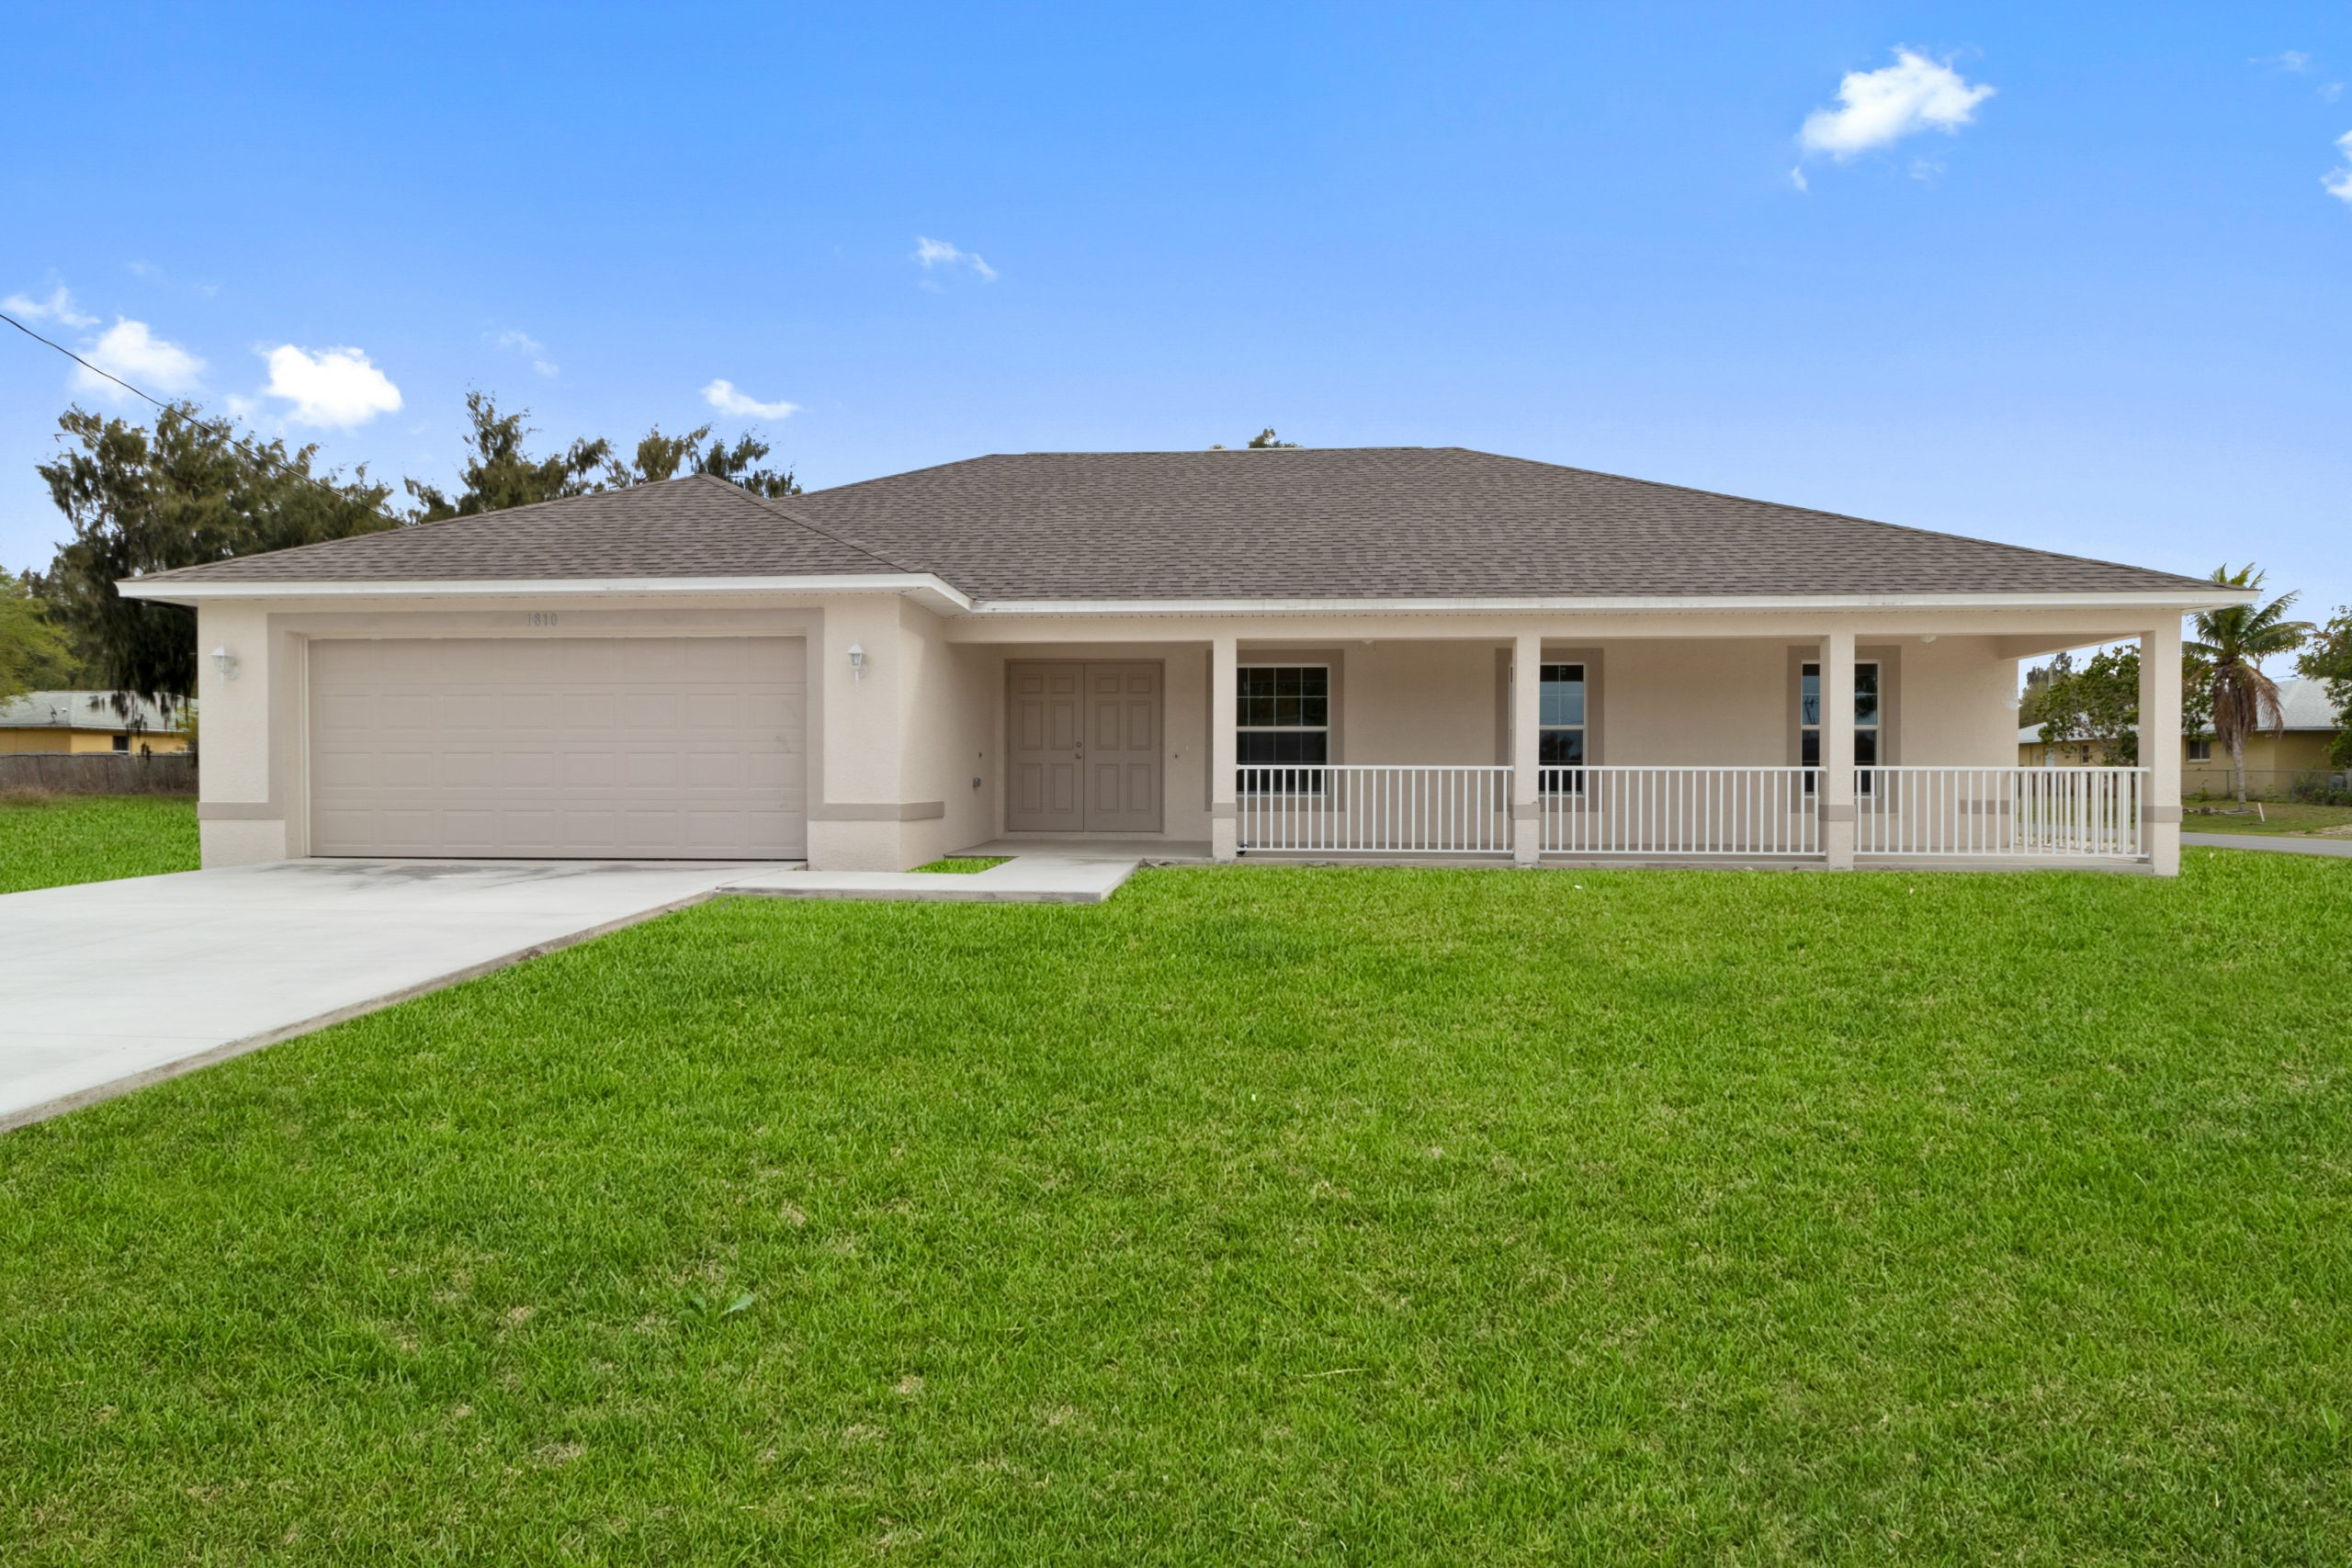 Copy of 1810 SW 3rd St, Cape Coral (37 of 37)